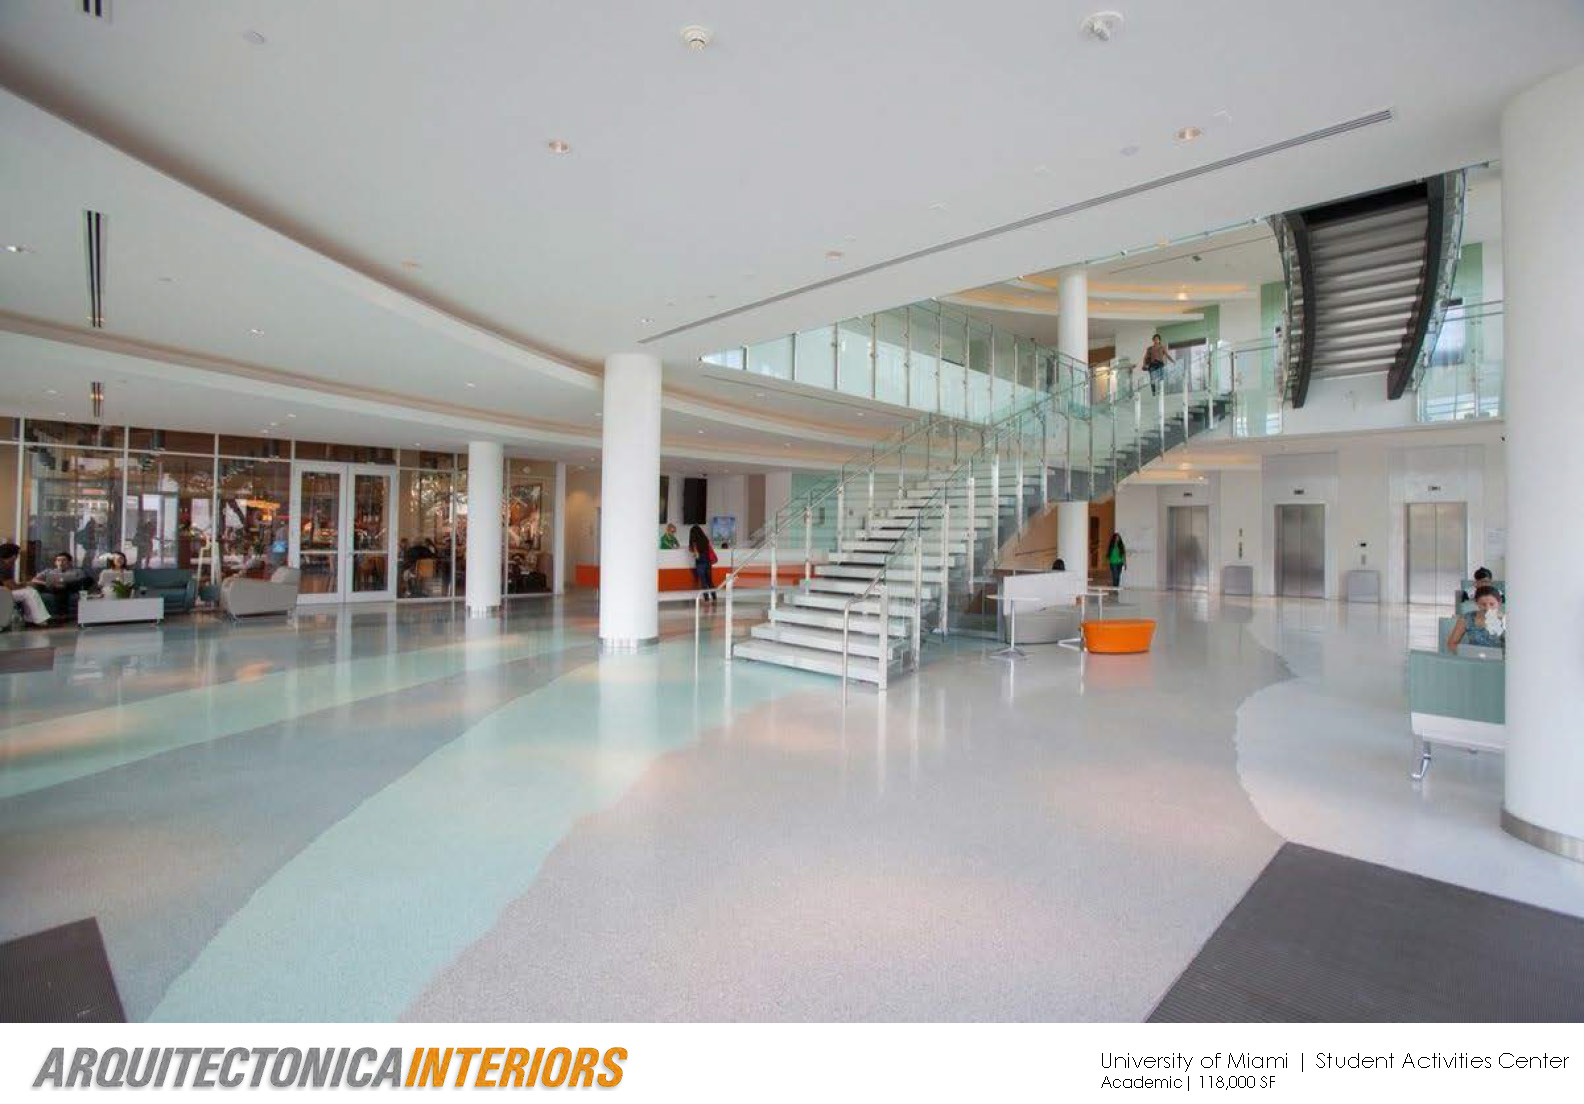 University of Miami Student Activities Center Carlos Colon Archinect